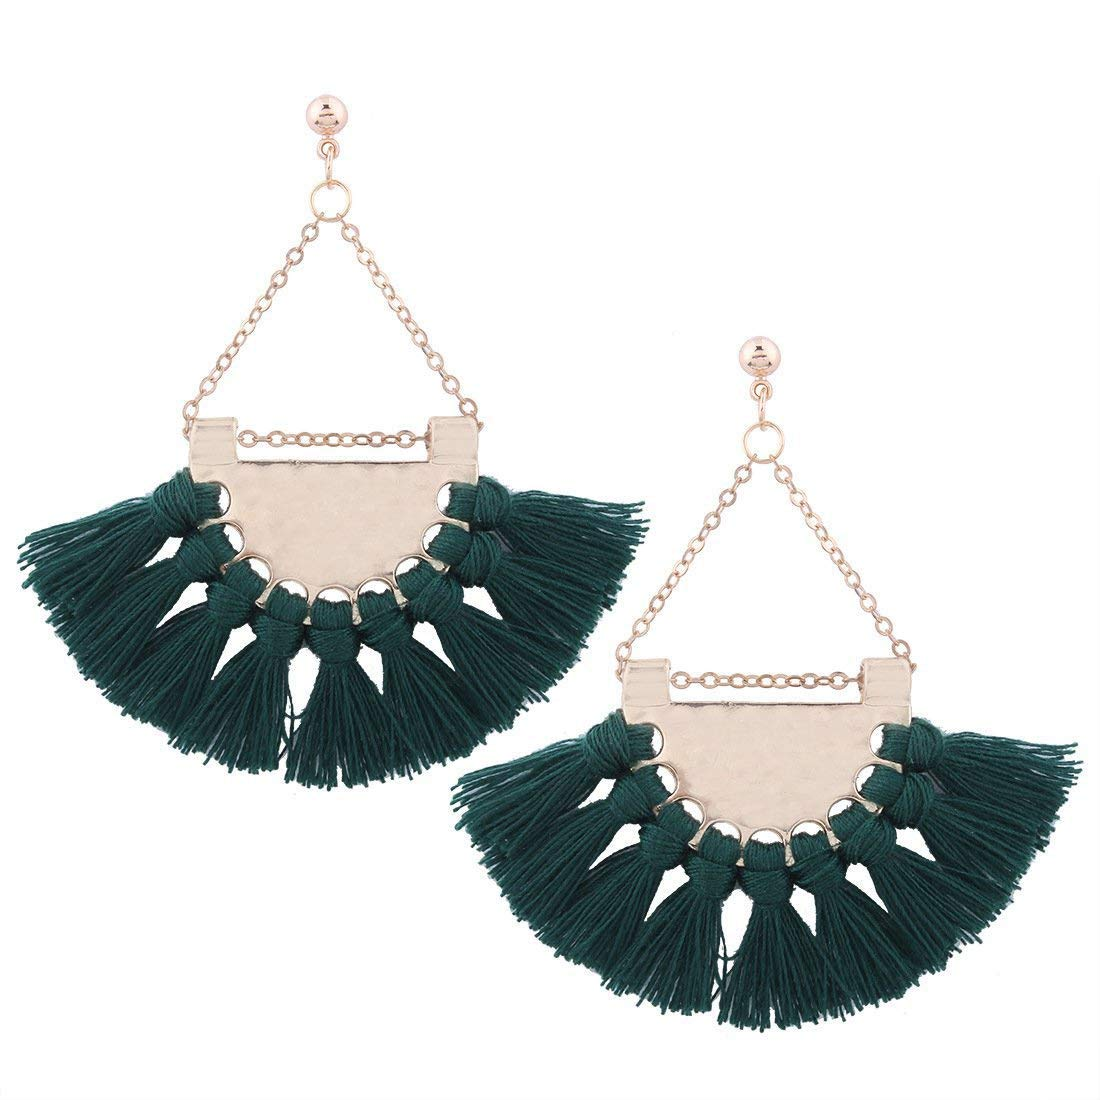 Boomly Womens Girls Elegant Bohemia Earring With Tassel Fashion Sector Earring Exaggeration Popular Beach Earrings Jewelry Accessories Boomly_0068